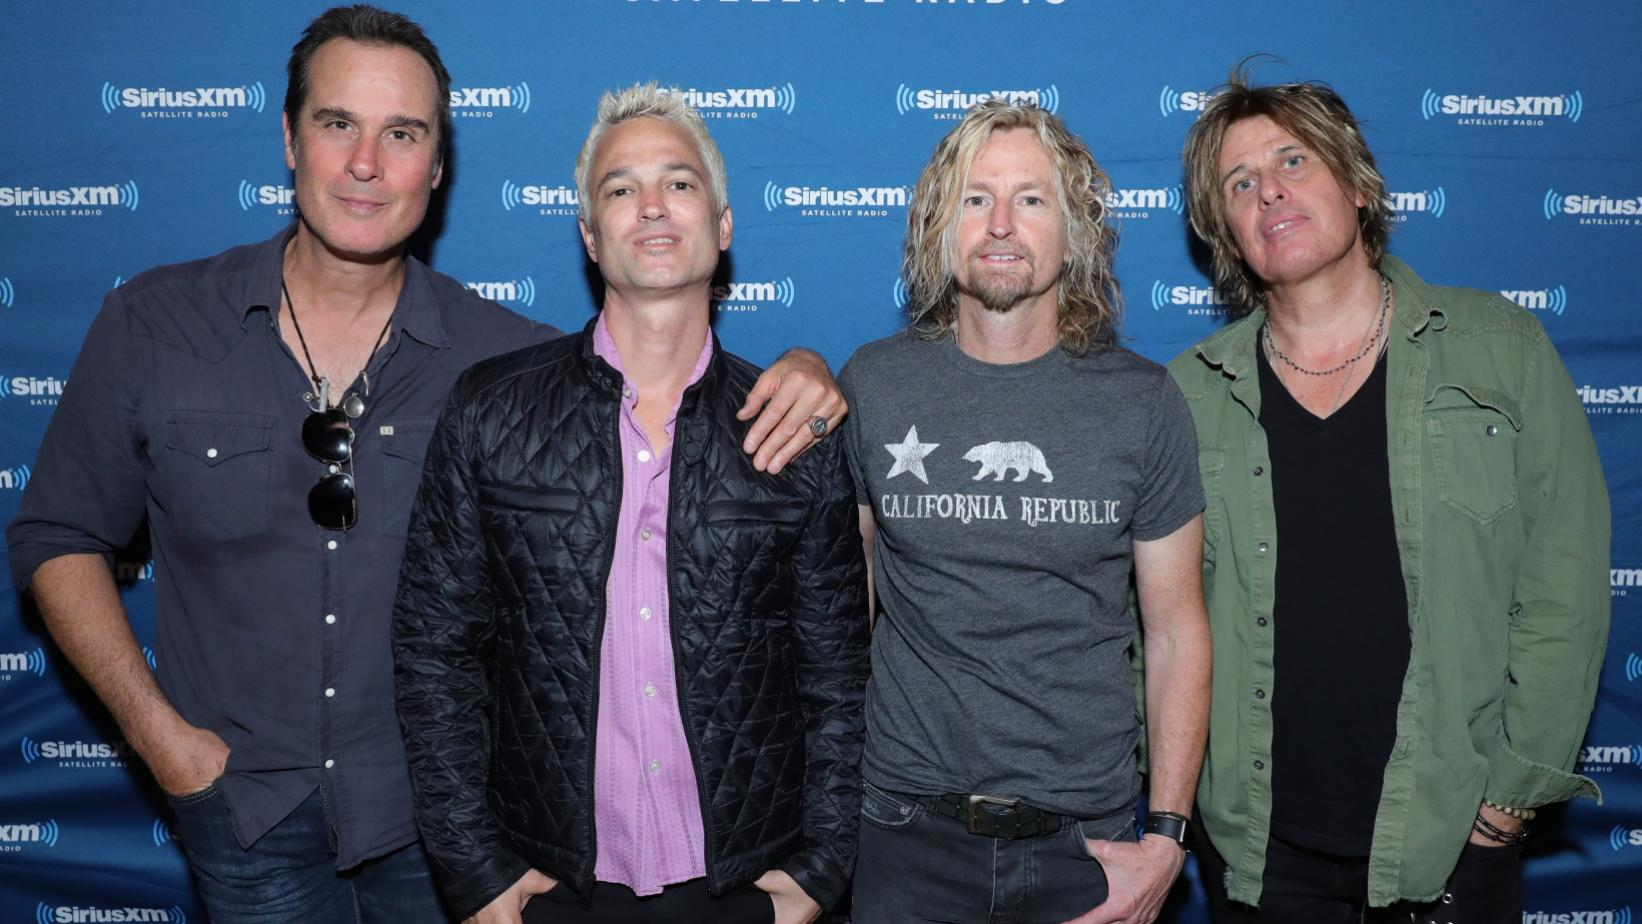 Stone Temple Pilots with lead singer Jeff Gutt in 2017